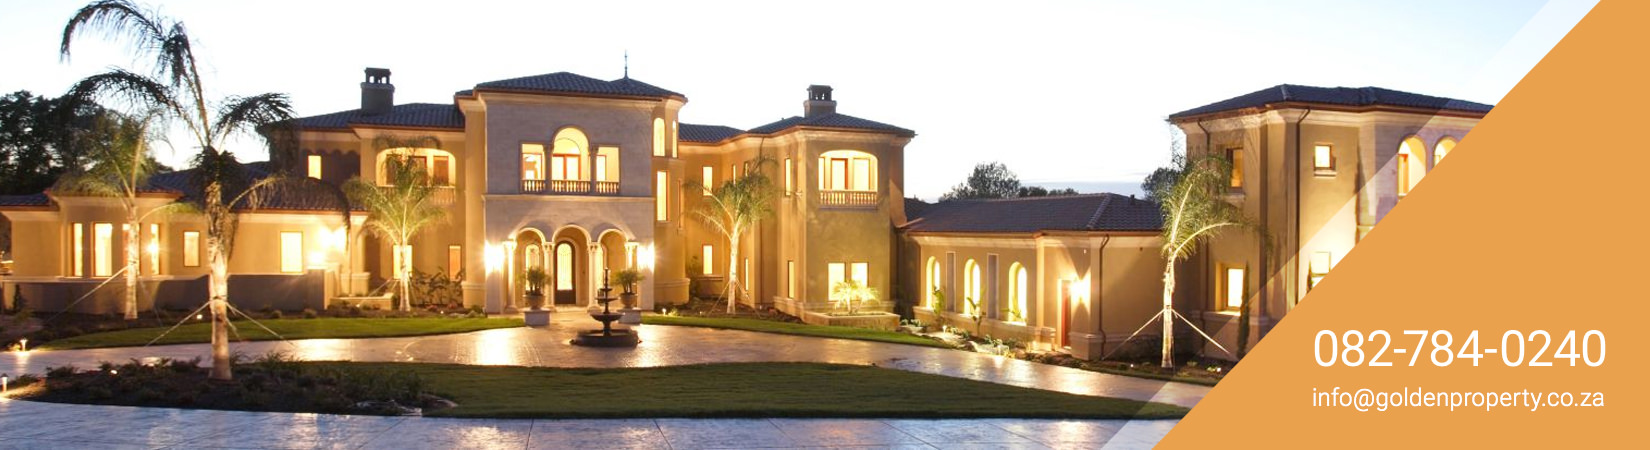 Great Luxury Property For Sale, On Auction In South Africa | Luxury Real Estate  Wanted South Africa | Golden Properties